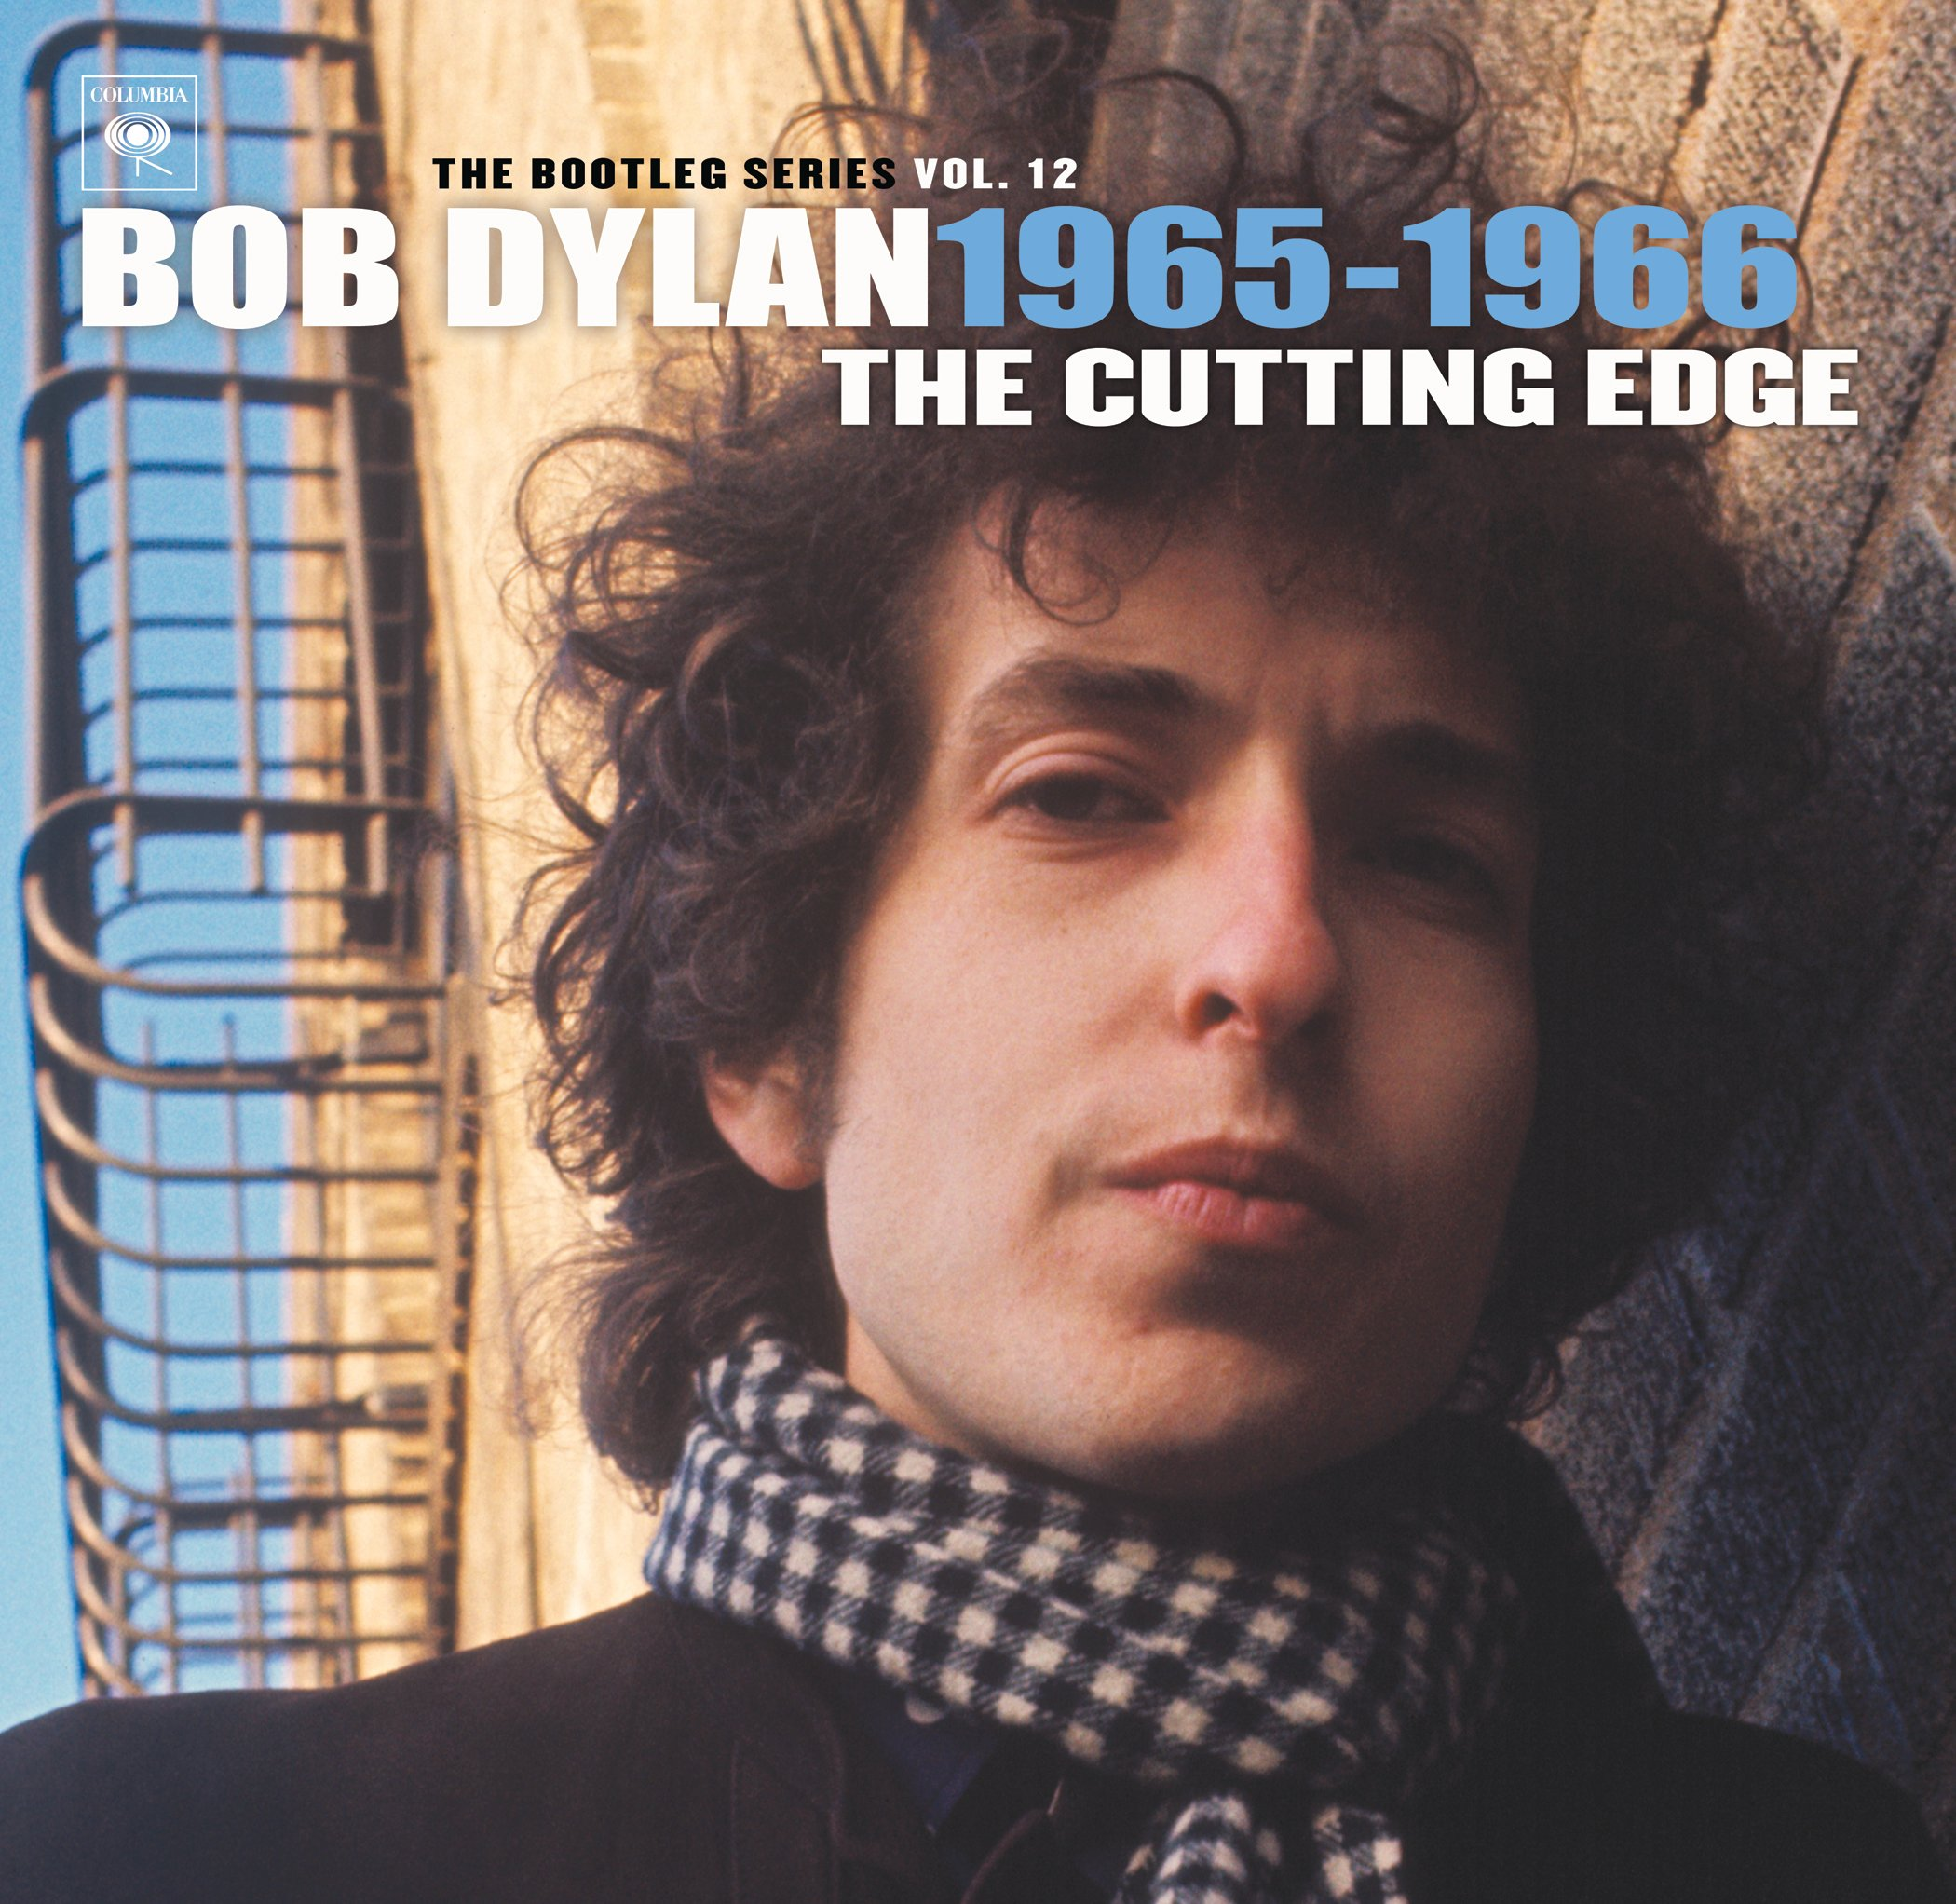 Listen To An Unreleased Take On Bob Dylan's 'Can You Please Crawl Out Your Window' Off 'The Cutting Edge'